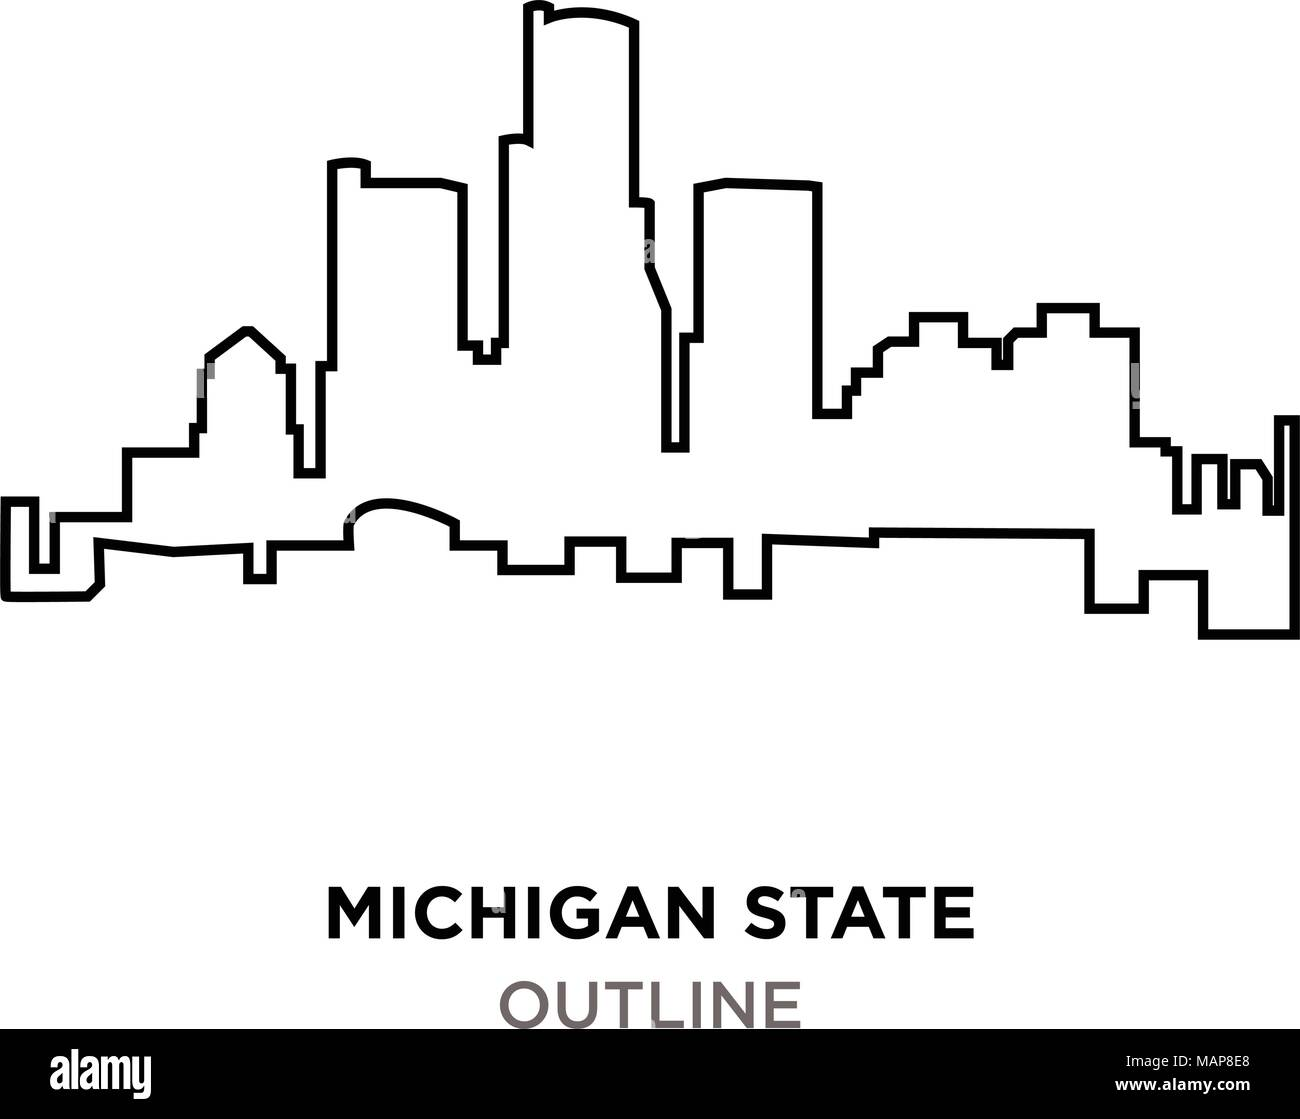 Michigan State Outline On White Background Stock Vector Art